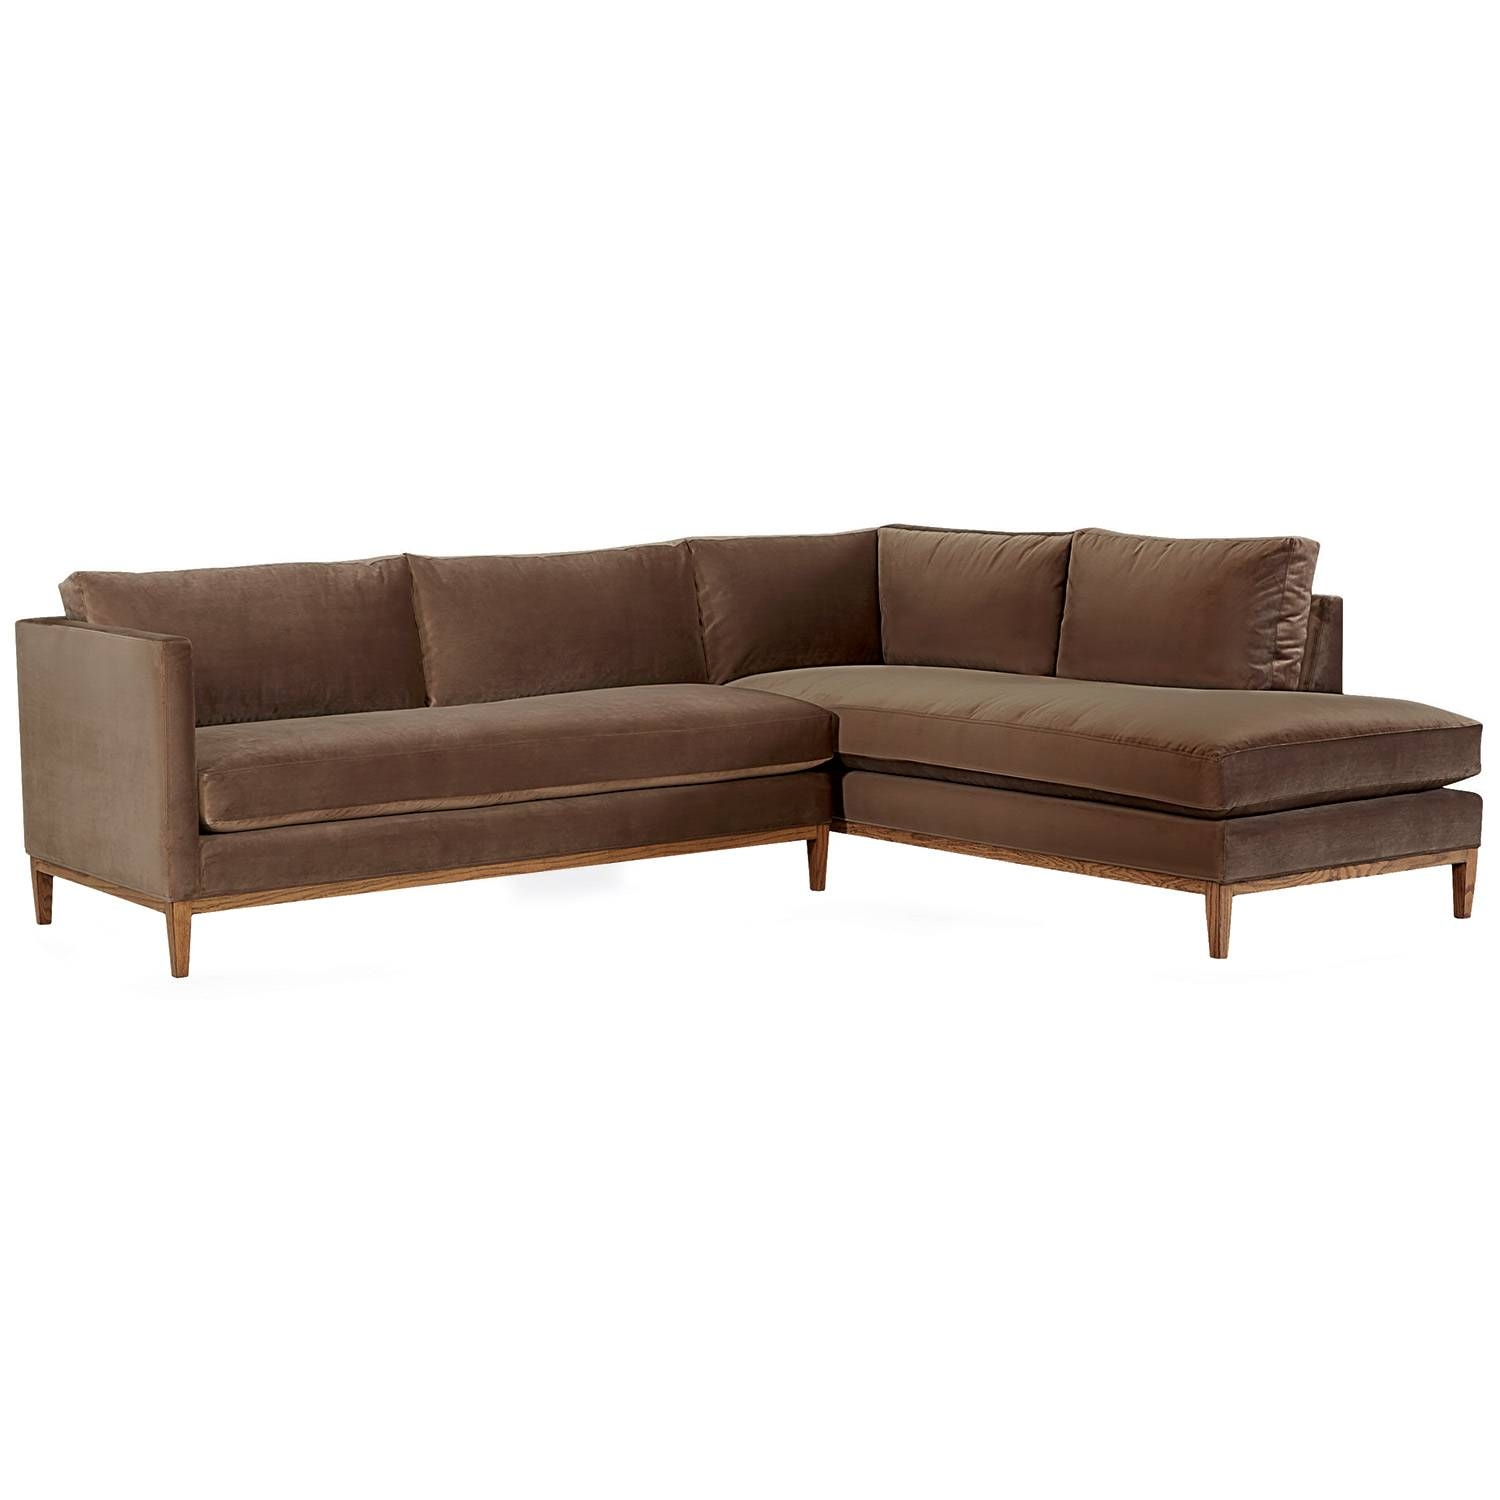 Modern Sofas, Modern Couches, Leather Sofas & Contemporary With Stratford Sofas (View 10 of 30)